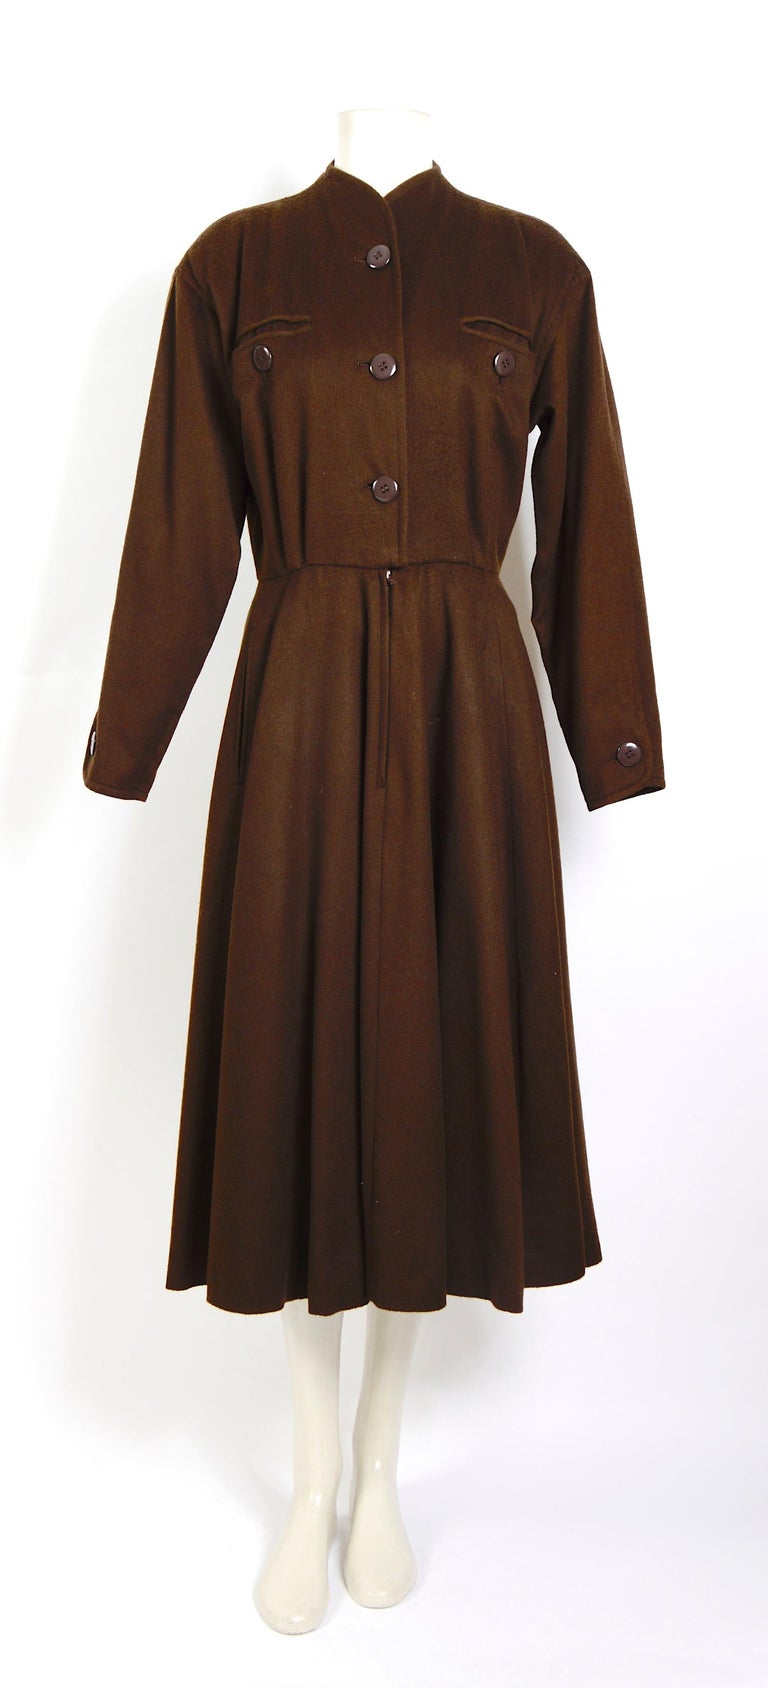 Black Yves Saint Laurent vintage 1970s brown wool winter dress For Sale